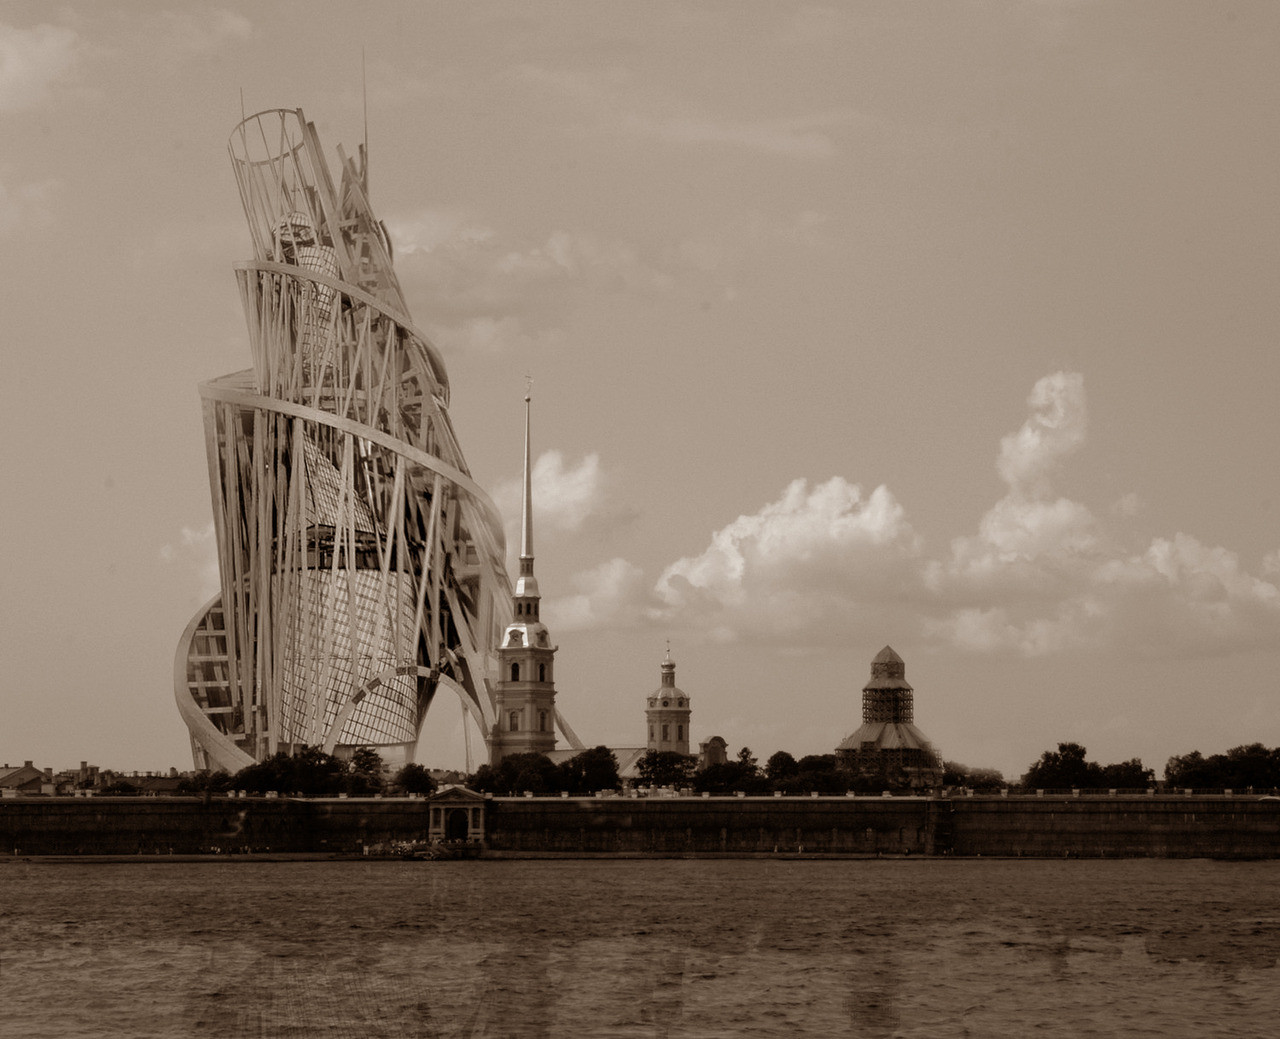 A rendering of Tatlin's Tower if it was constructed by the Neva in Petrograd (St. Petersburg)